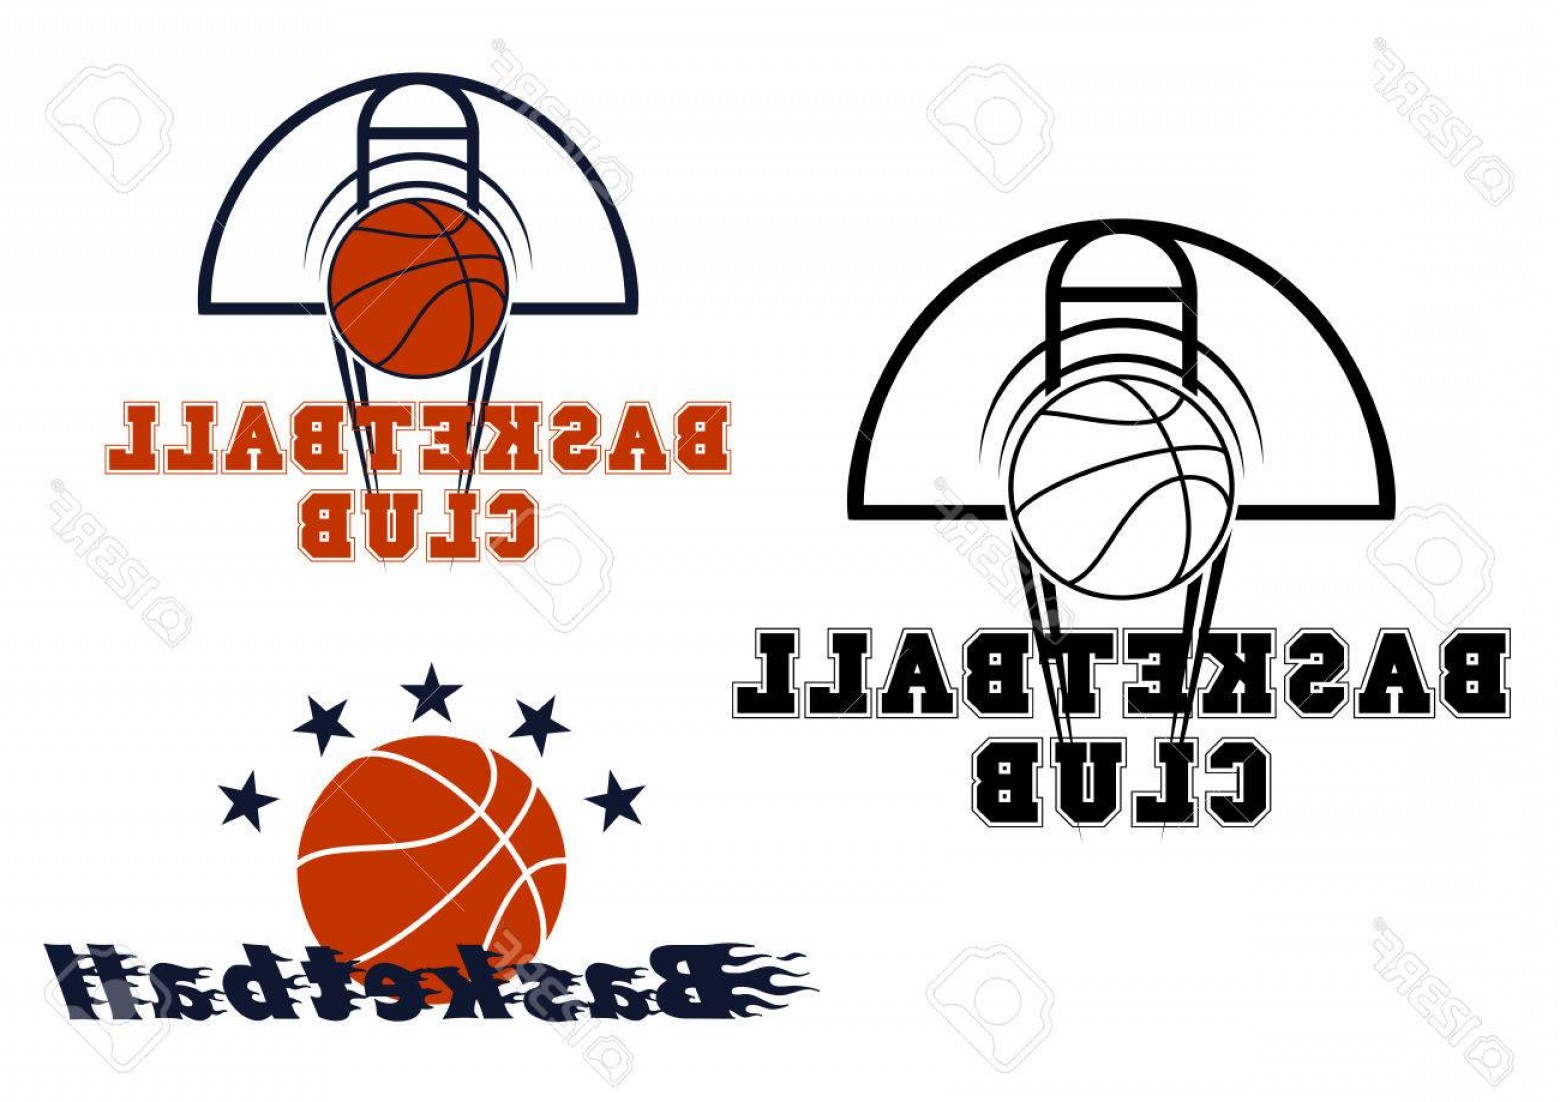 Motion Basketball Vector: Photostock Vector Basketball Sport Emblems With Stars And Flying Ball With Motion Trails Over Basketball Court